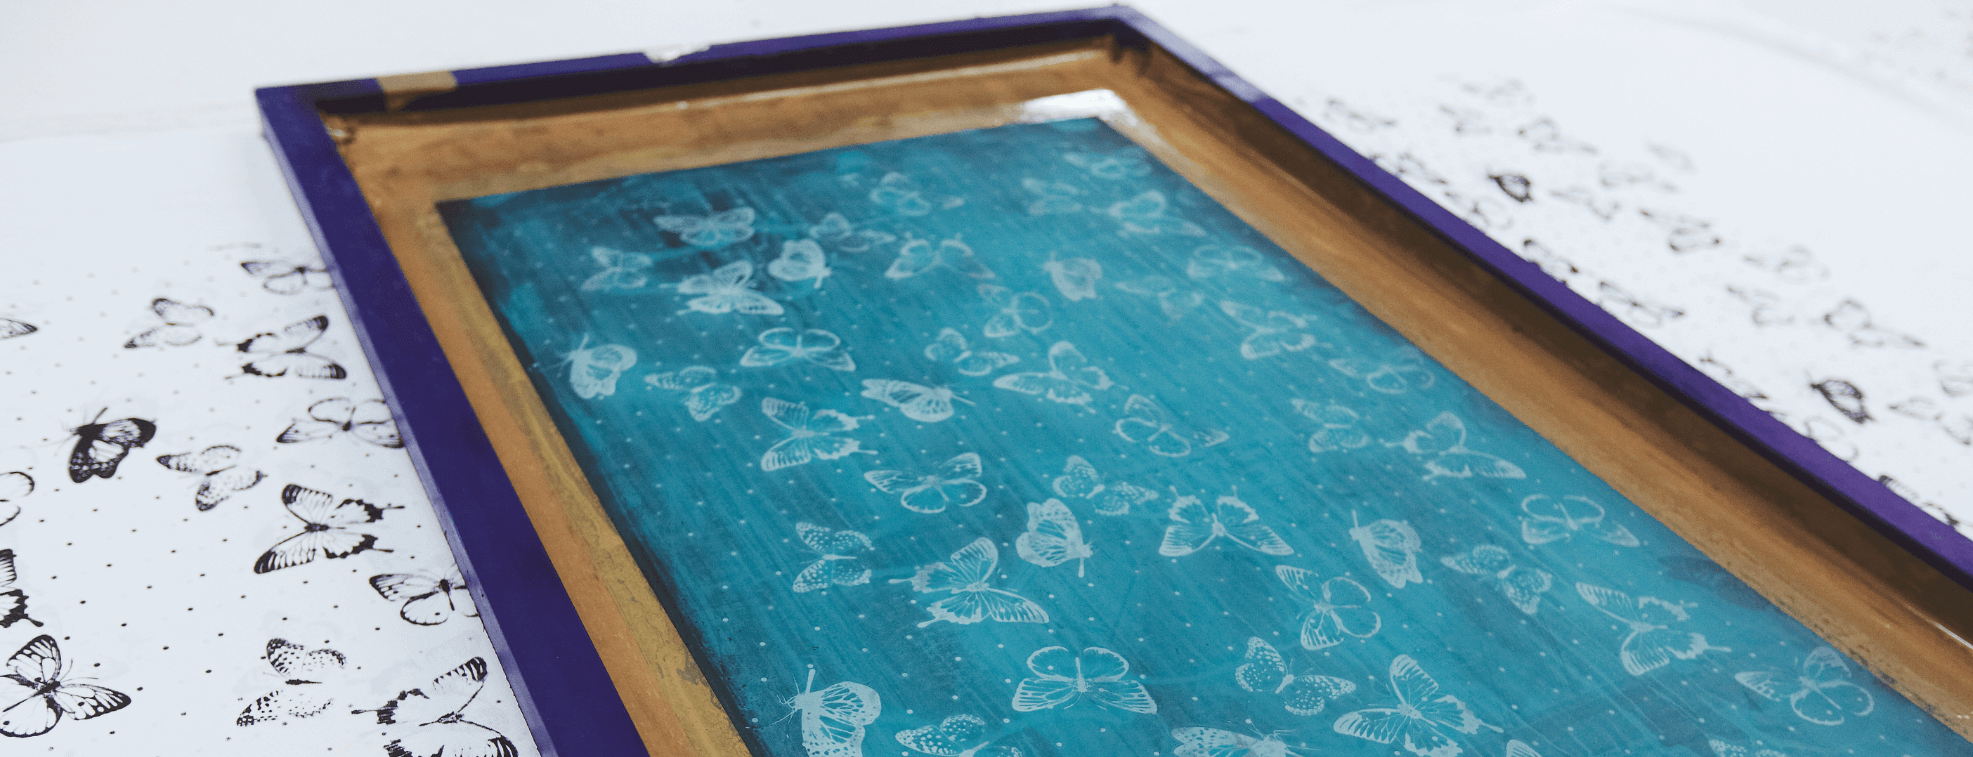 Butterfly pattern on a screen used for textile printing